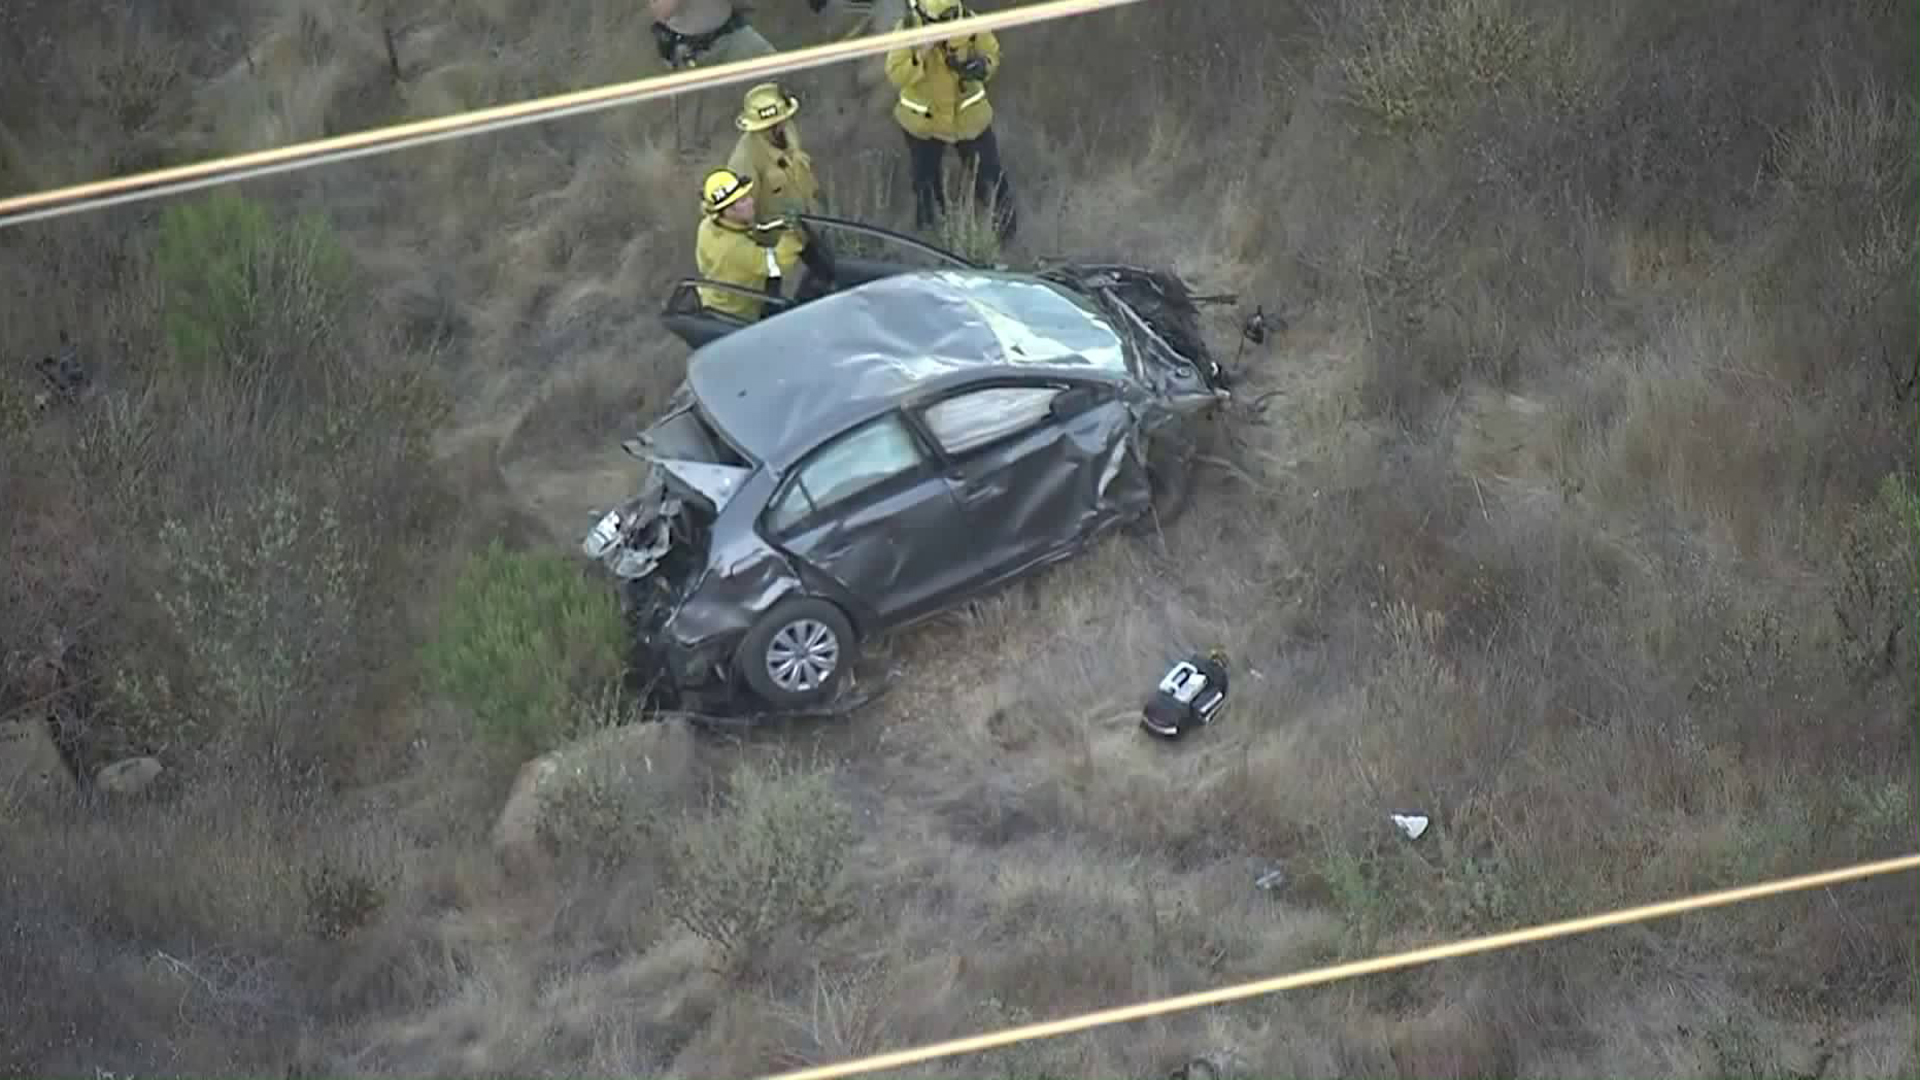 L.A. County Fire personnel responded to Castaic Canyons after a body was discovered in a car that went off the roadway on Nov. 7, 2018. (Credit: KTLA)